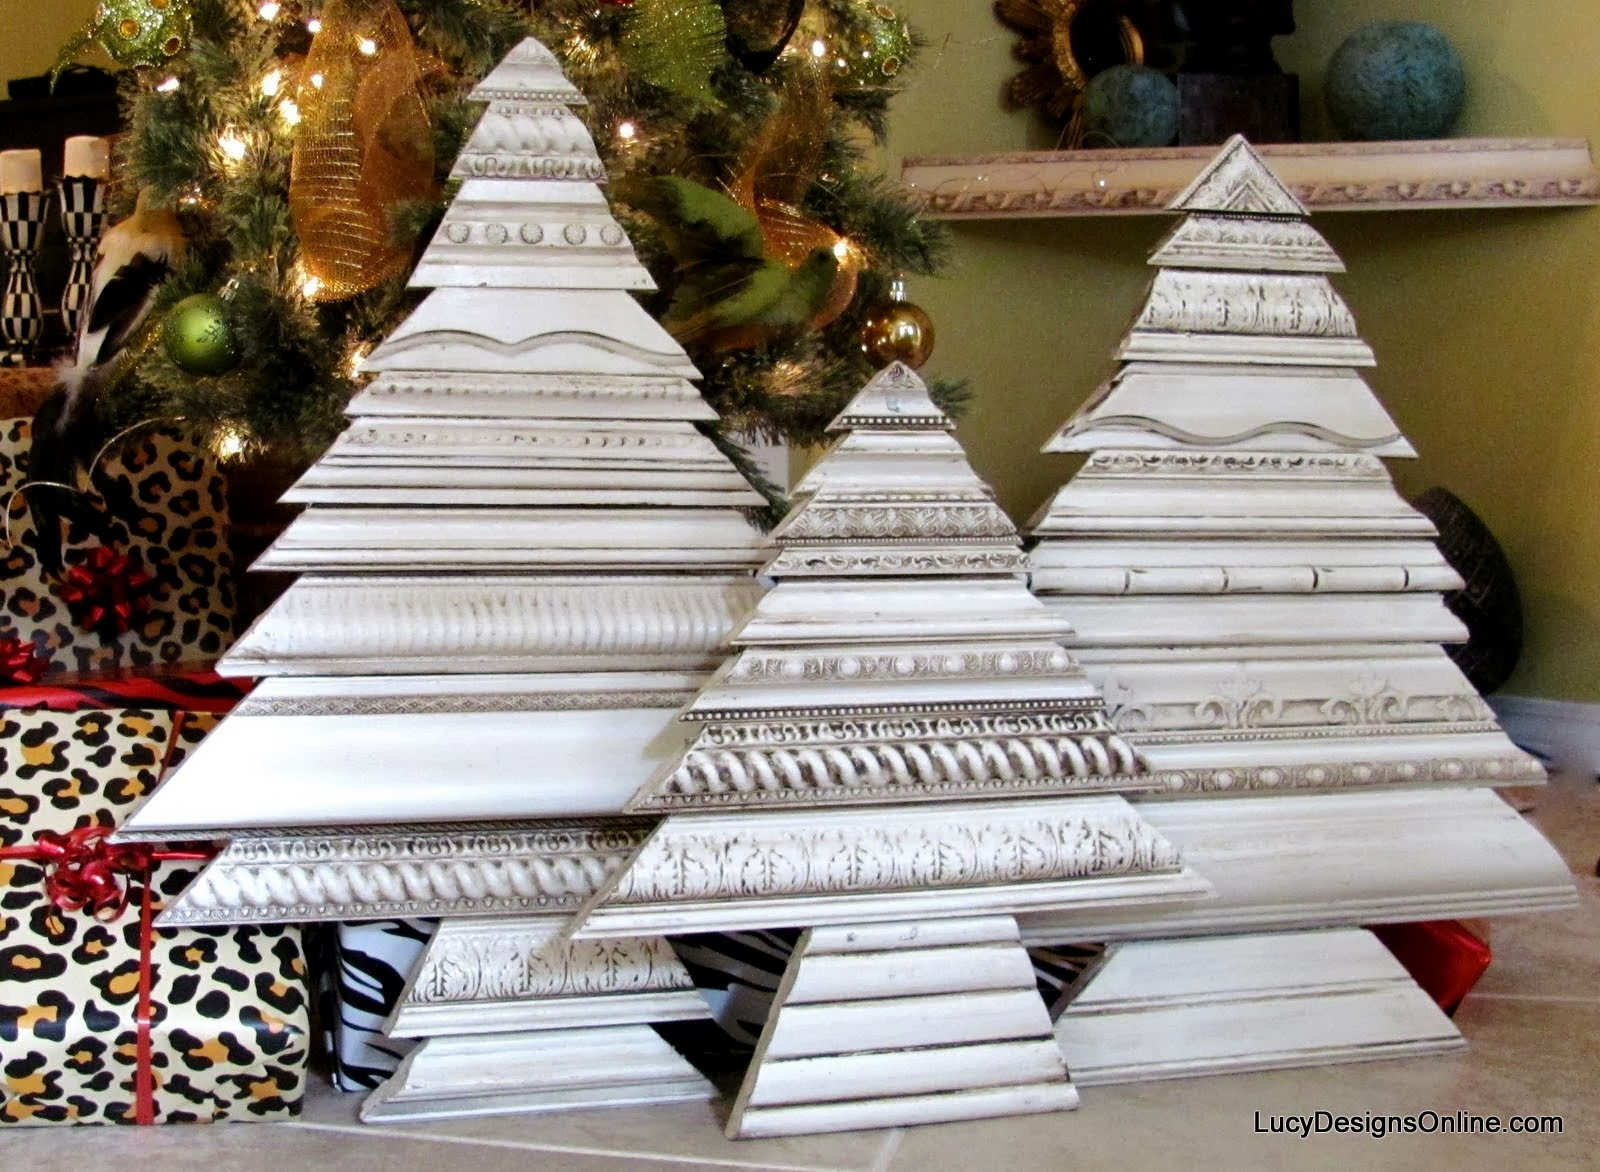 decorative molding Christmas tree sculptures Lucy Designs